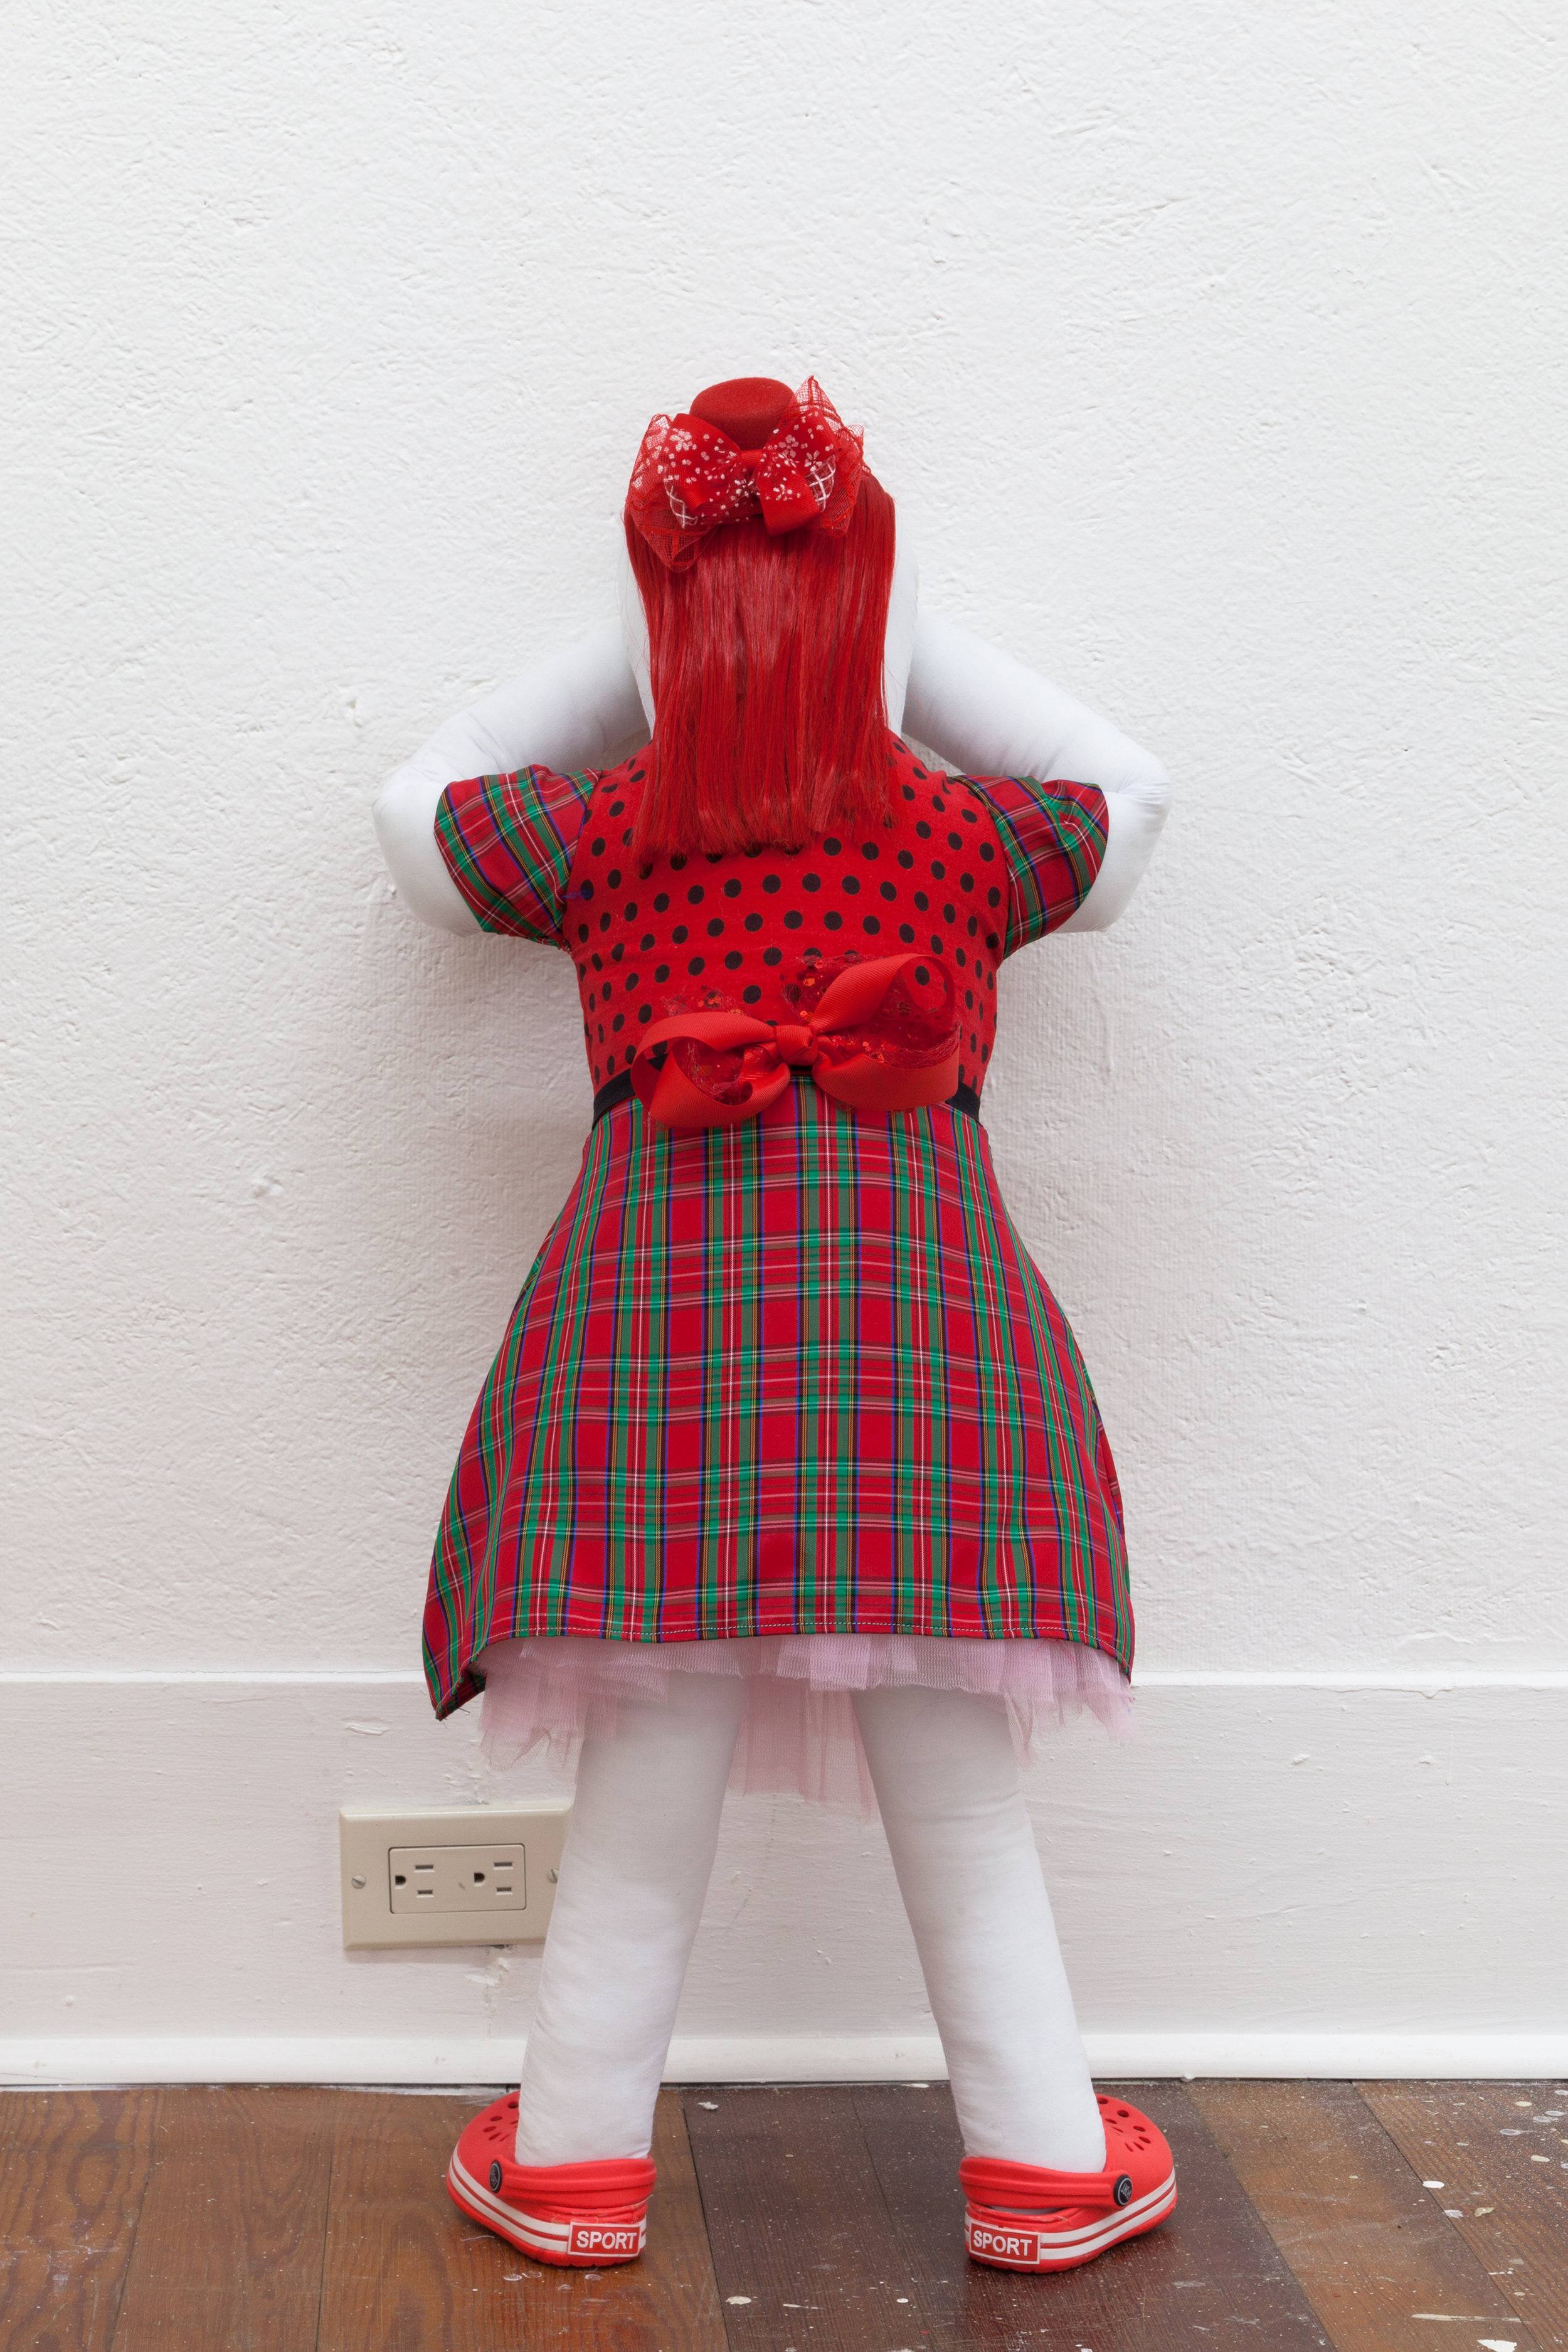 Abby Lloyd, Hadley, 2019, Fabric, Poly-Fil, ribbon, hair extensions, found materials Approximately 36 x 14 inches